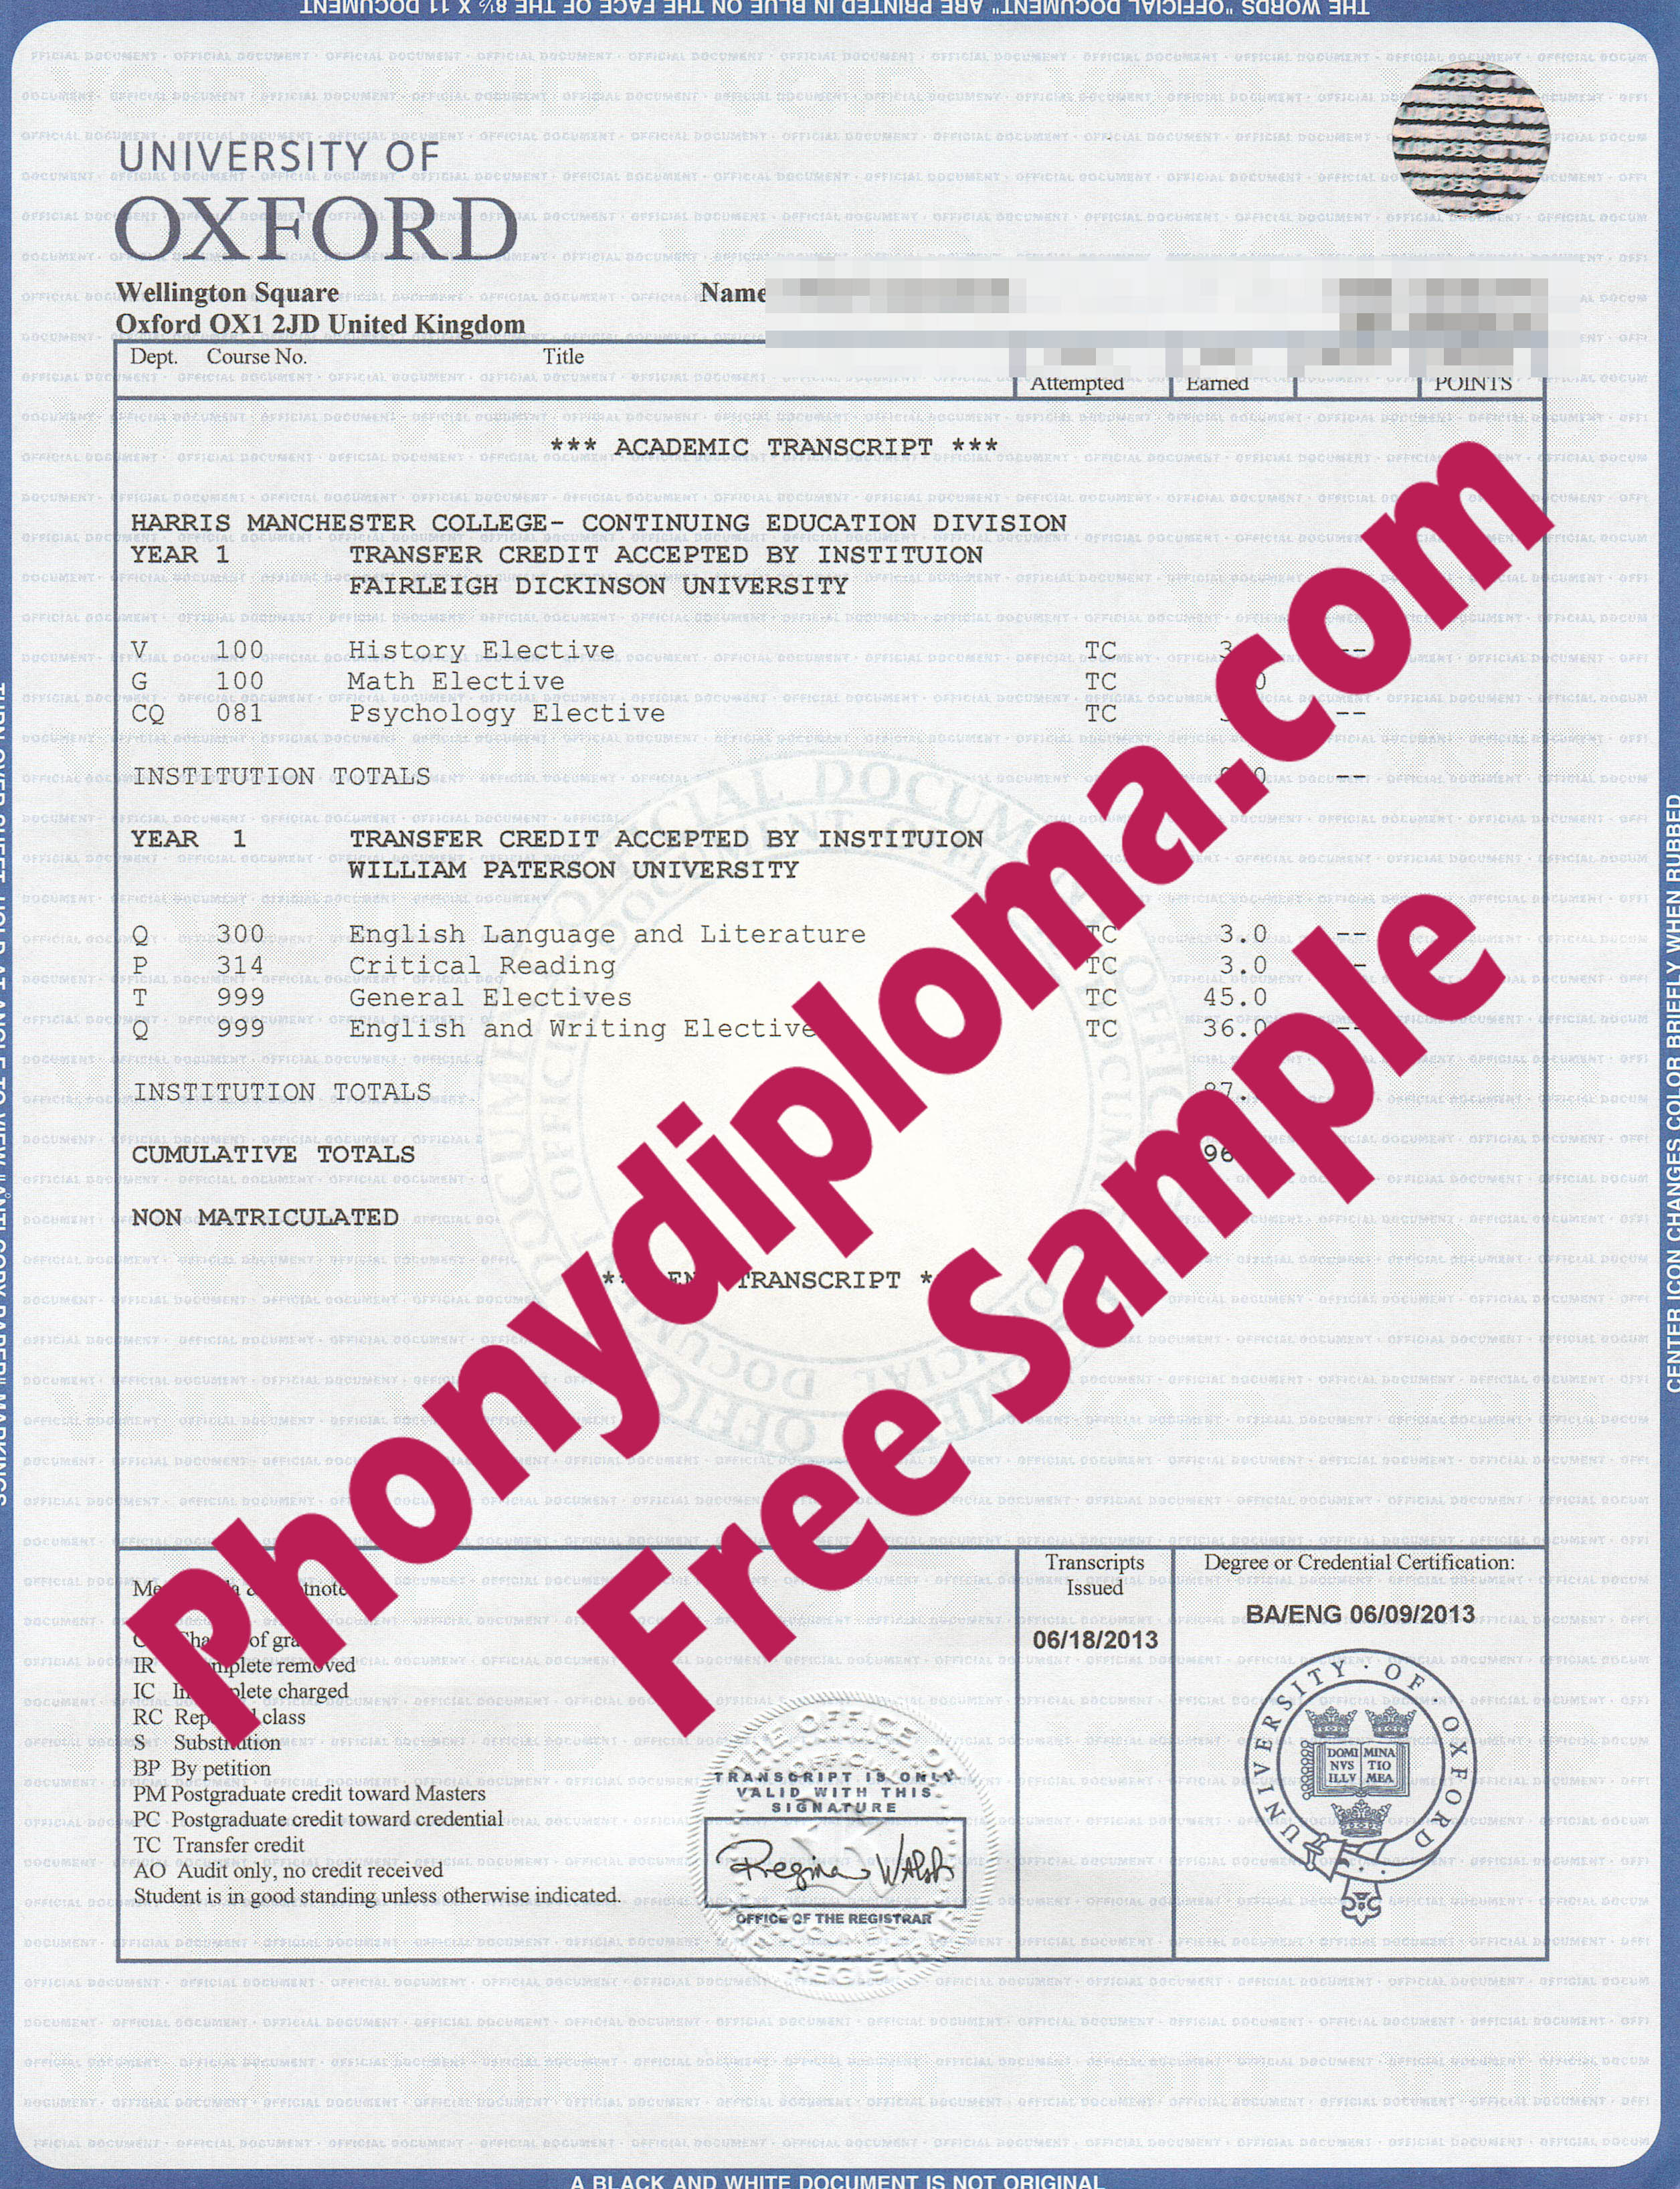 University Of Oxford House Desgin Transcripts Free Sample From Phonydiploma